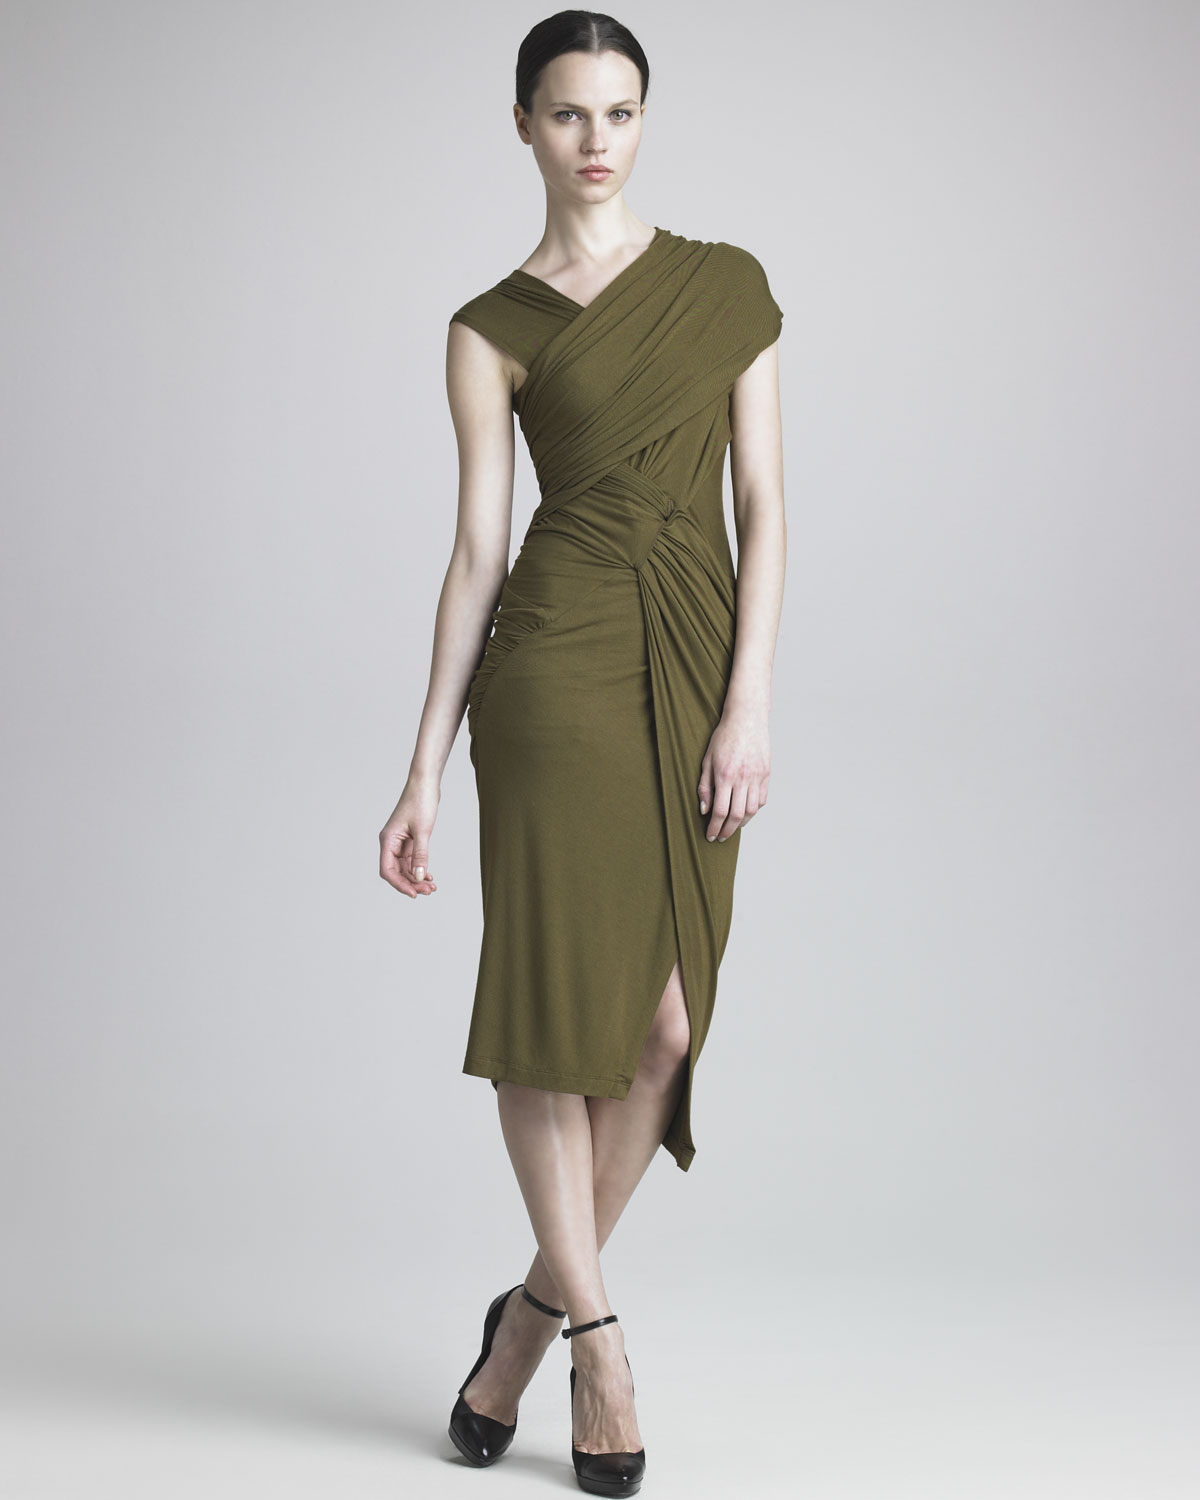 Donna karan new york draped jersey dress in green lyst for Donna karen new york